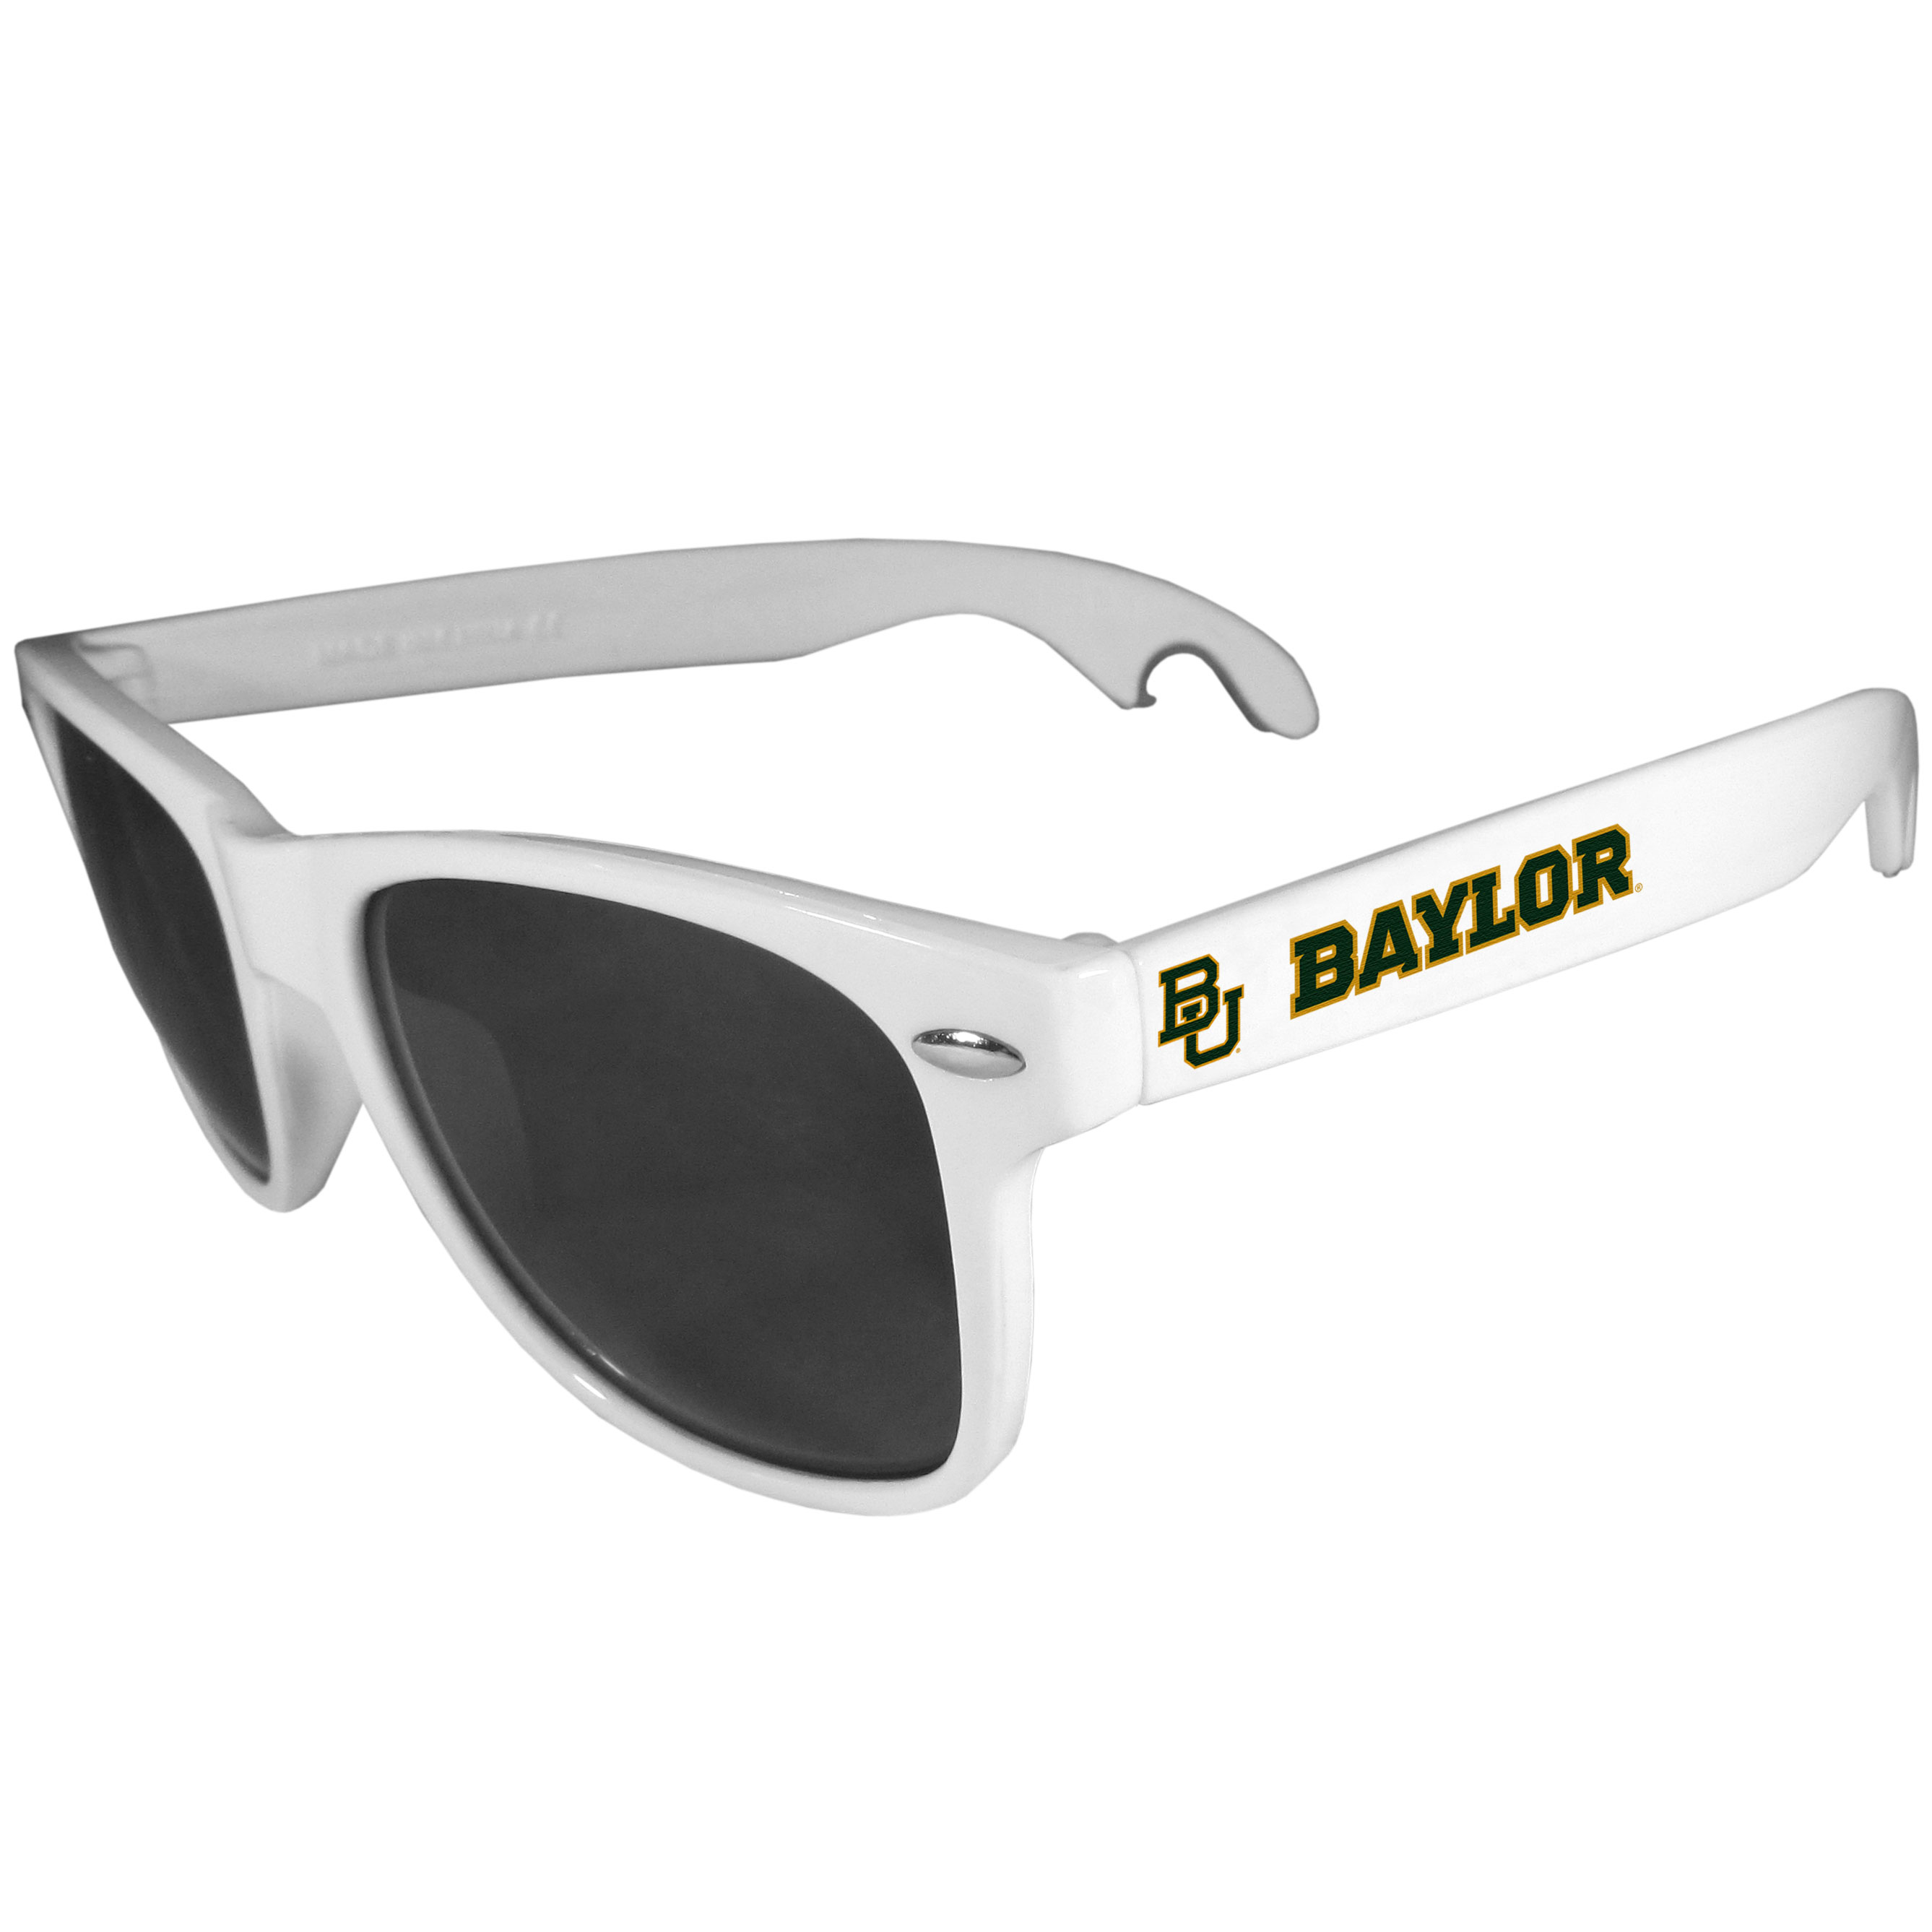 Baylor Bears Beachfarer Bottle Opener Sunglasses, White - Seriously, these sunglasses open bottles! Keep the party going with these amazing Baylor Bears bottle opener sunglasses. The stylish retro frames feature team designs on the arms and functional bottle openers on the end of the arms. Whether you are at the beach or having a backyard BBQ on game day, these shades will keep your eyes protected with 100% UVA/UVB protection and keep you hydrated with the handy bottle opener arms.